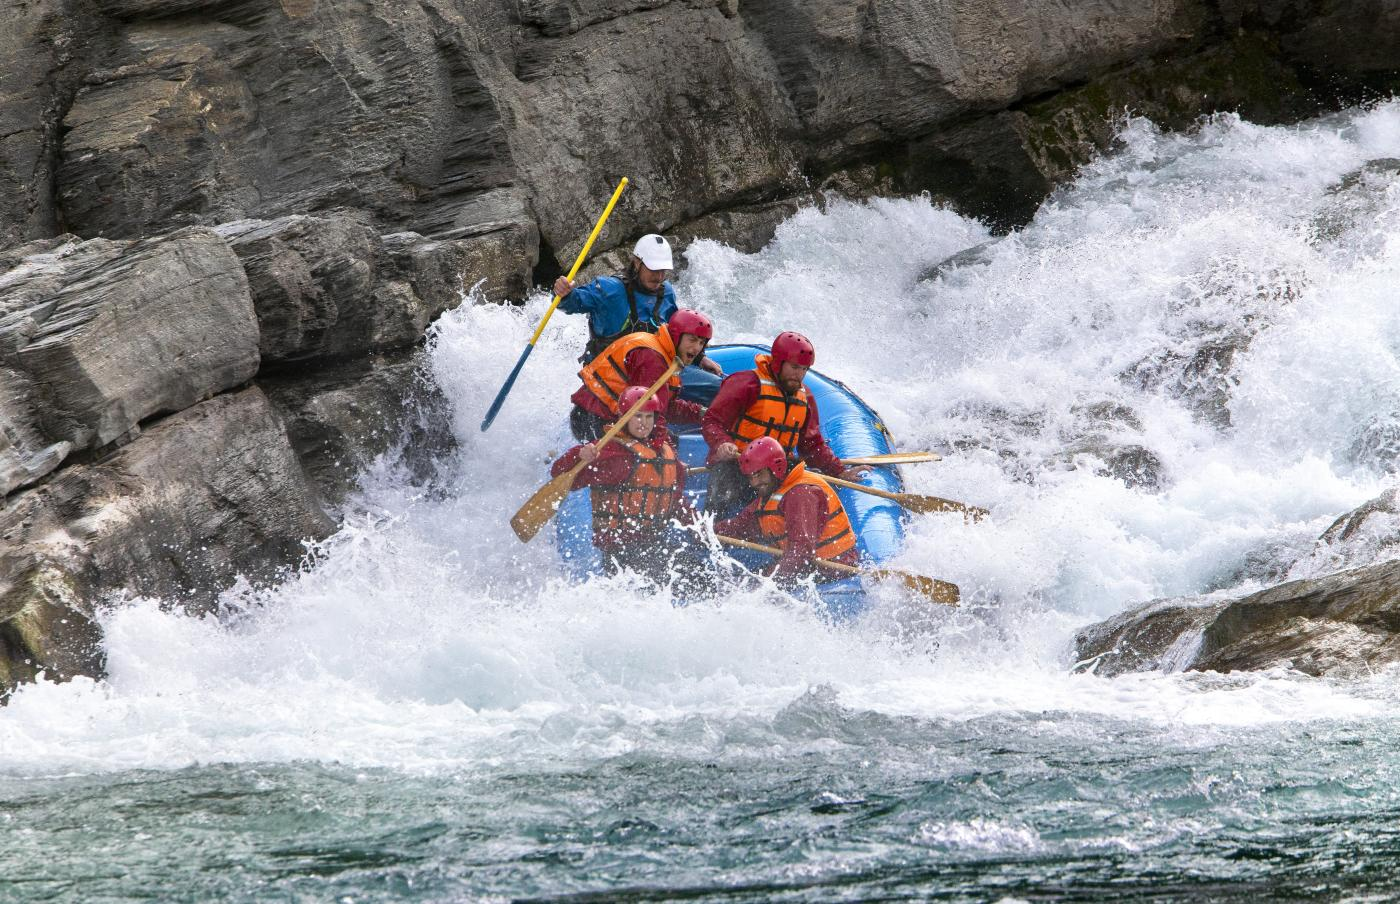 Whitewater rafting with Go Orange